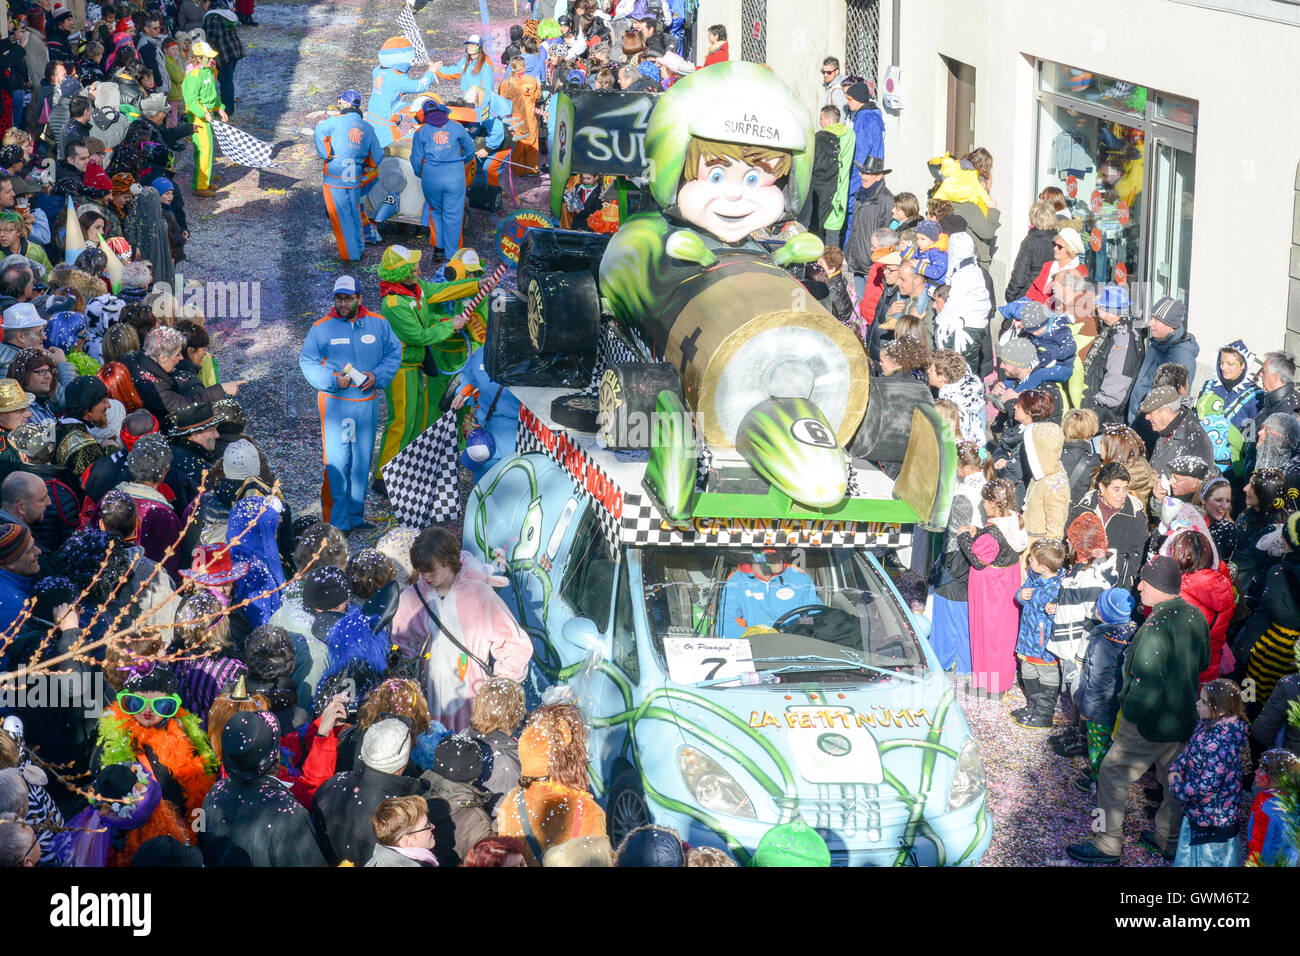 Tesserete, Switzerland - 13 February 2016: people marching in the parade of the carnival at Tesserete on the italian - Stock Image